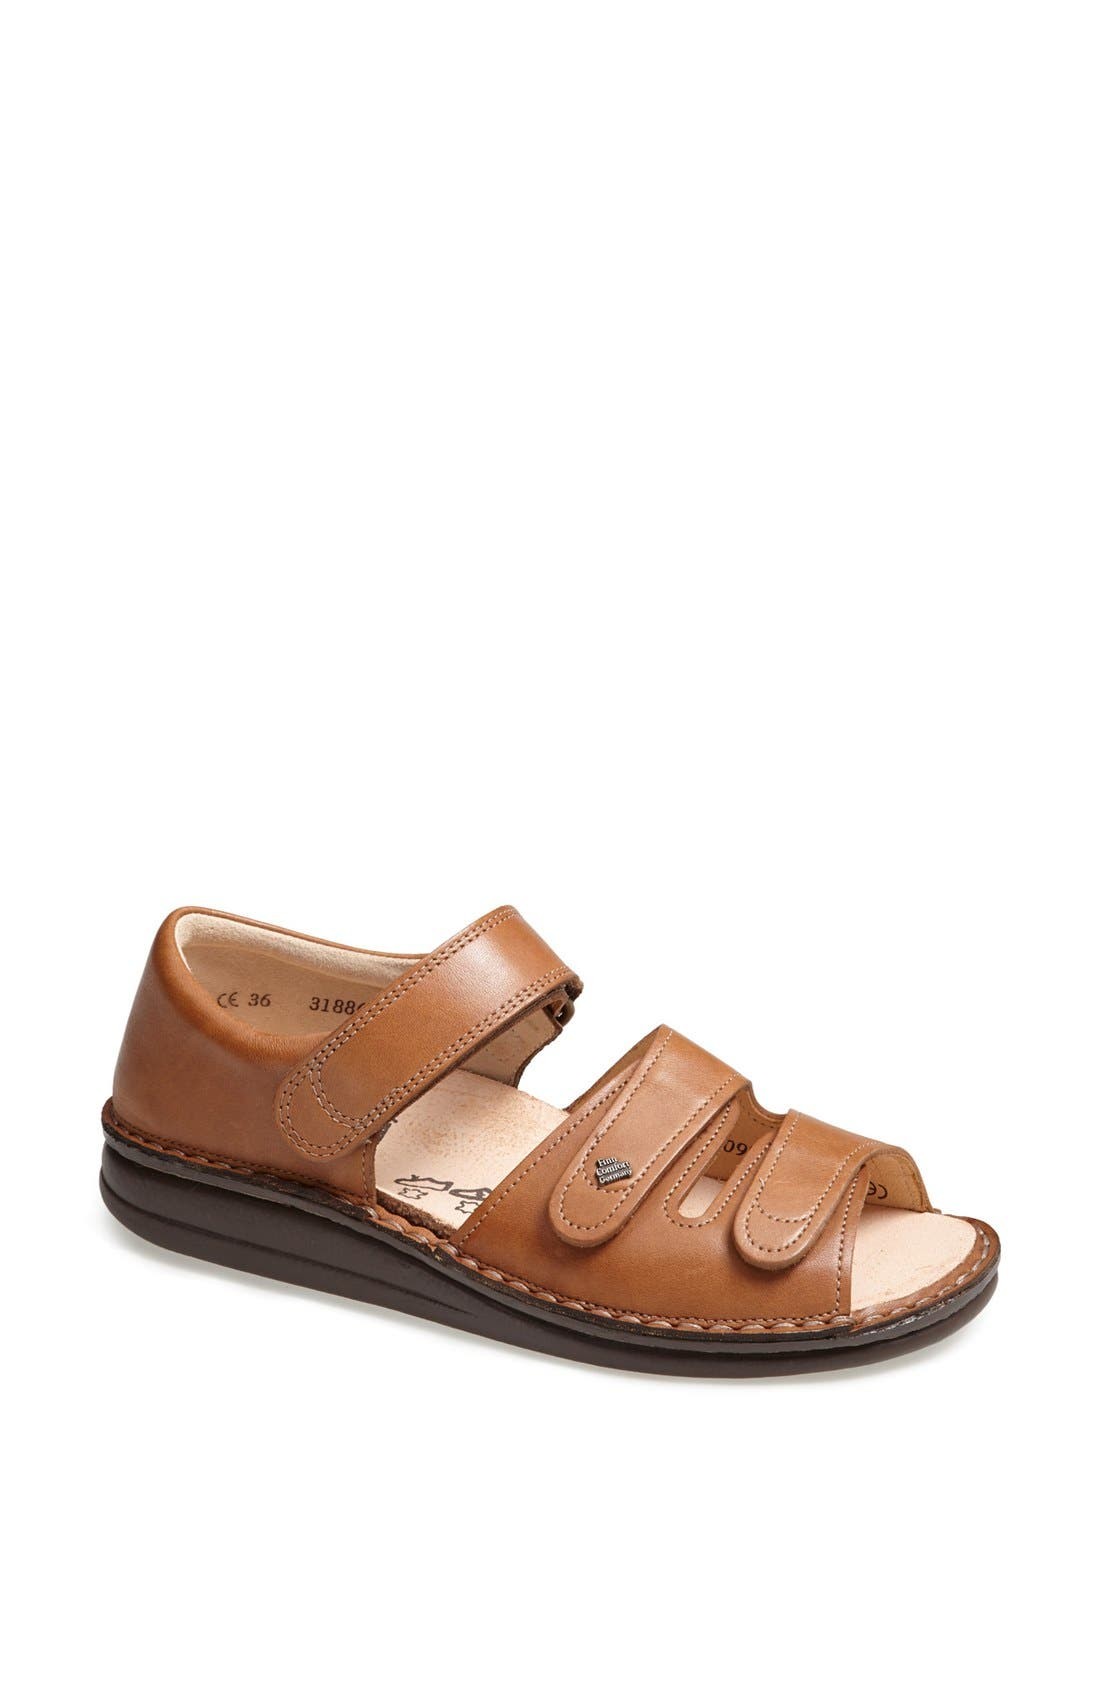 'Baltrum 1518' Leather Sandal,                         Main,                         color, NUT